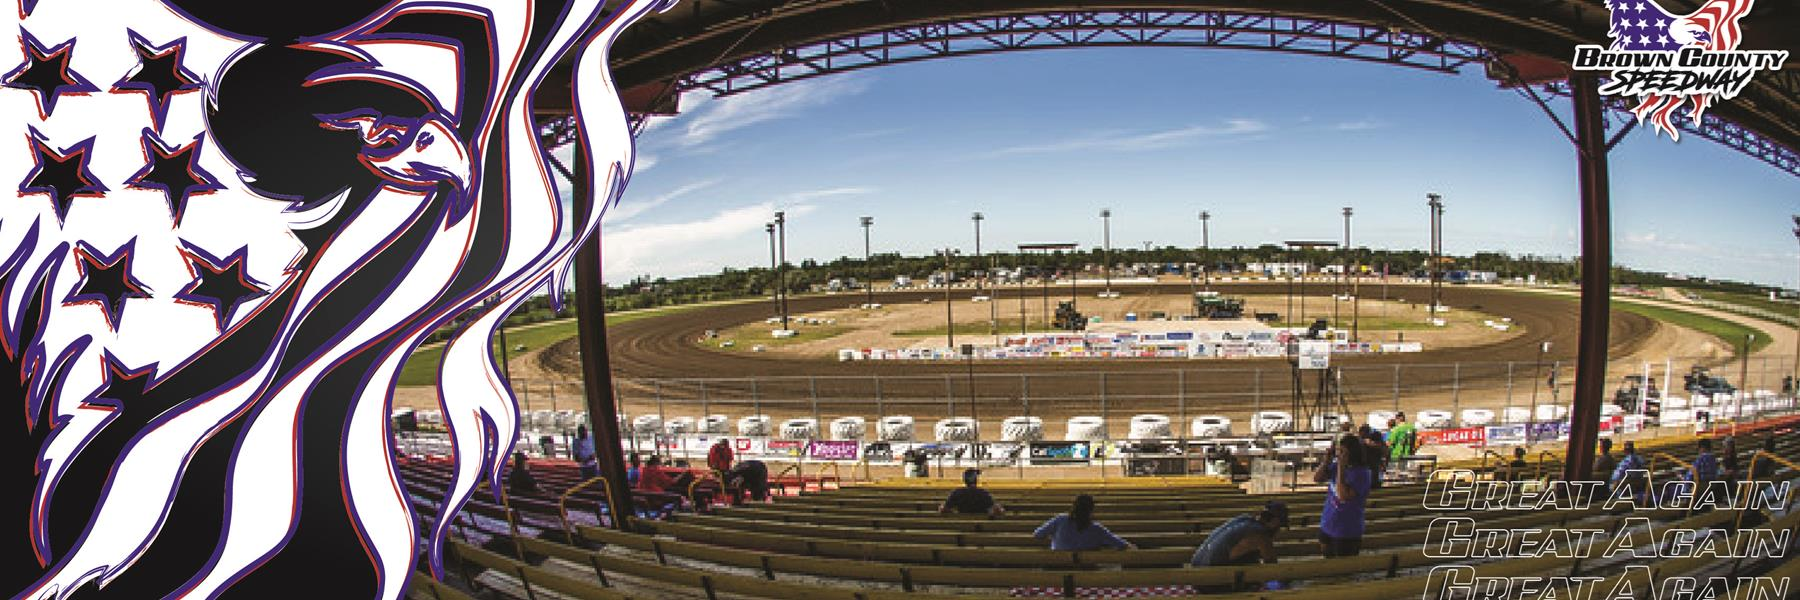 6/4/2021 - Brown County Speedway